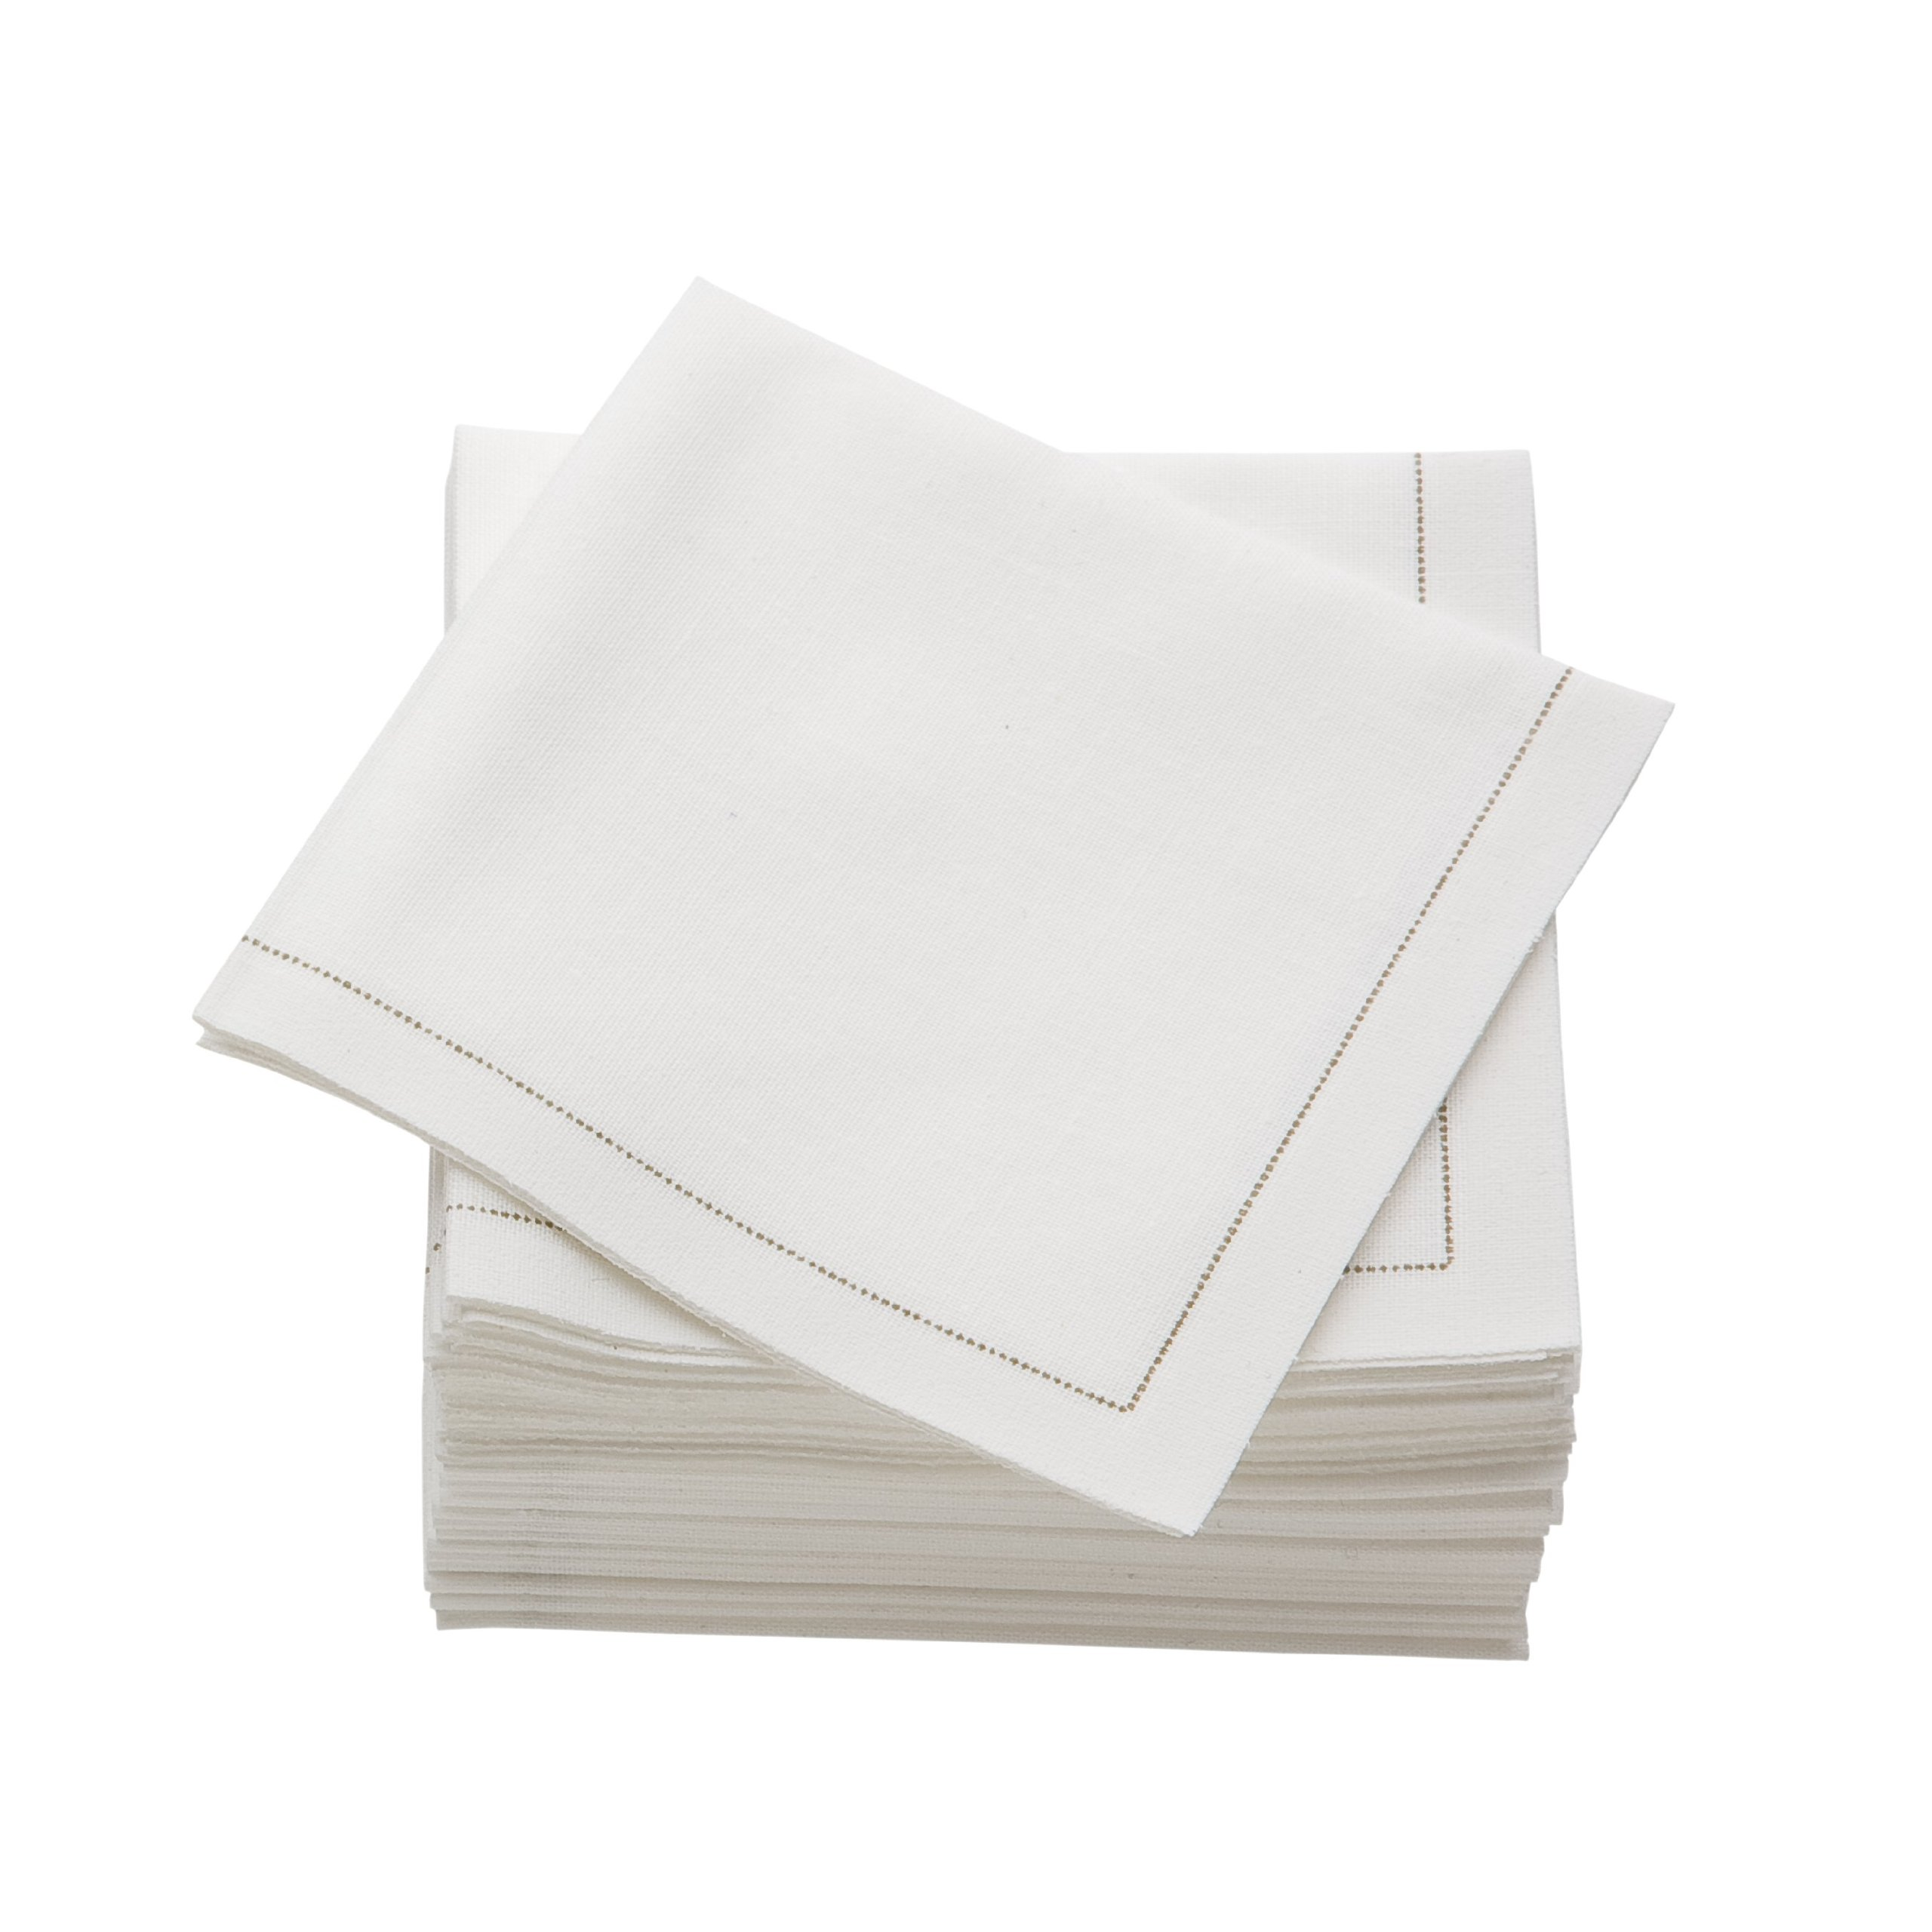 MYdrap SA21/101-5 Pre-folded Cotton Luncheon Napkin, 4.0'' Length x 4.0'' Width, Ecru (Case of 300) by MYdrap